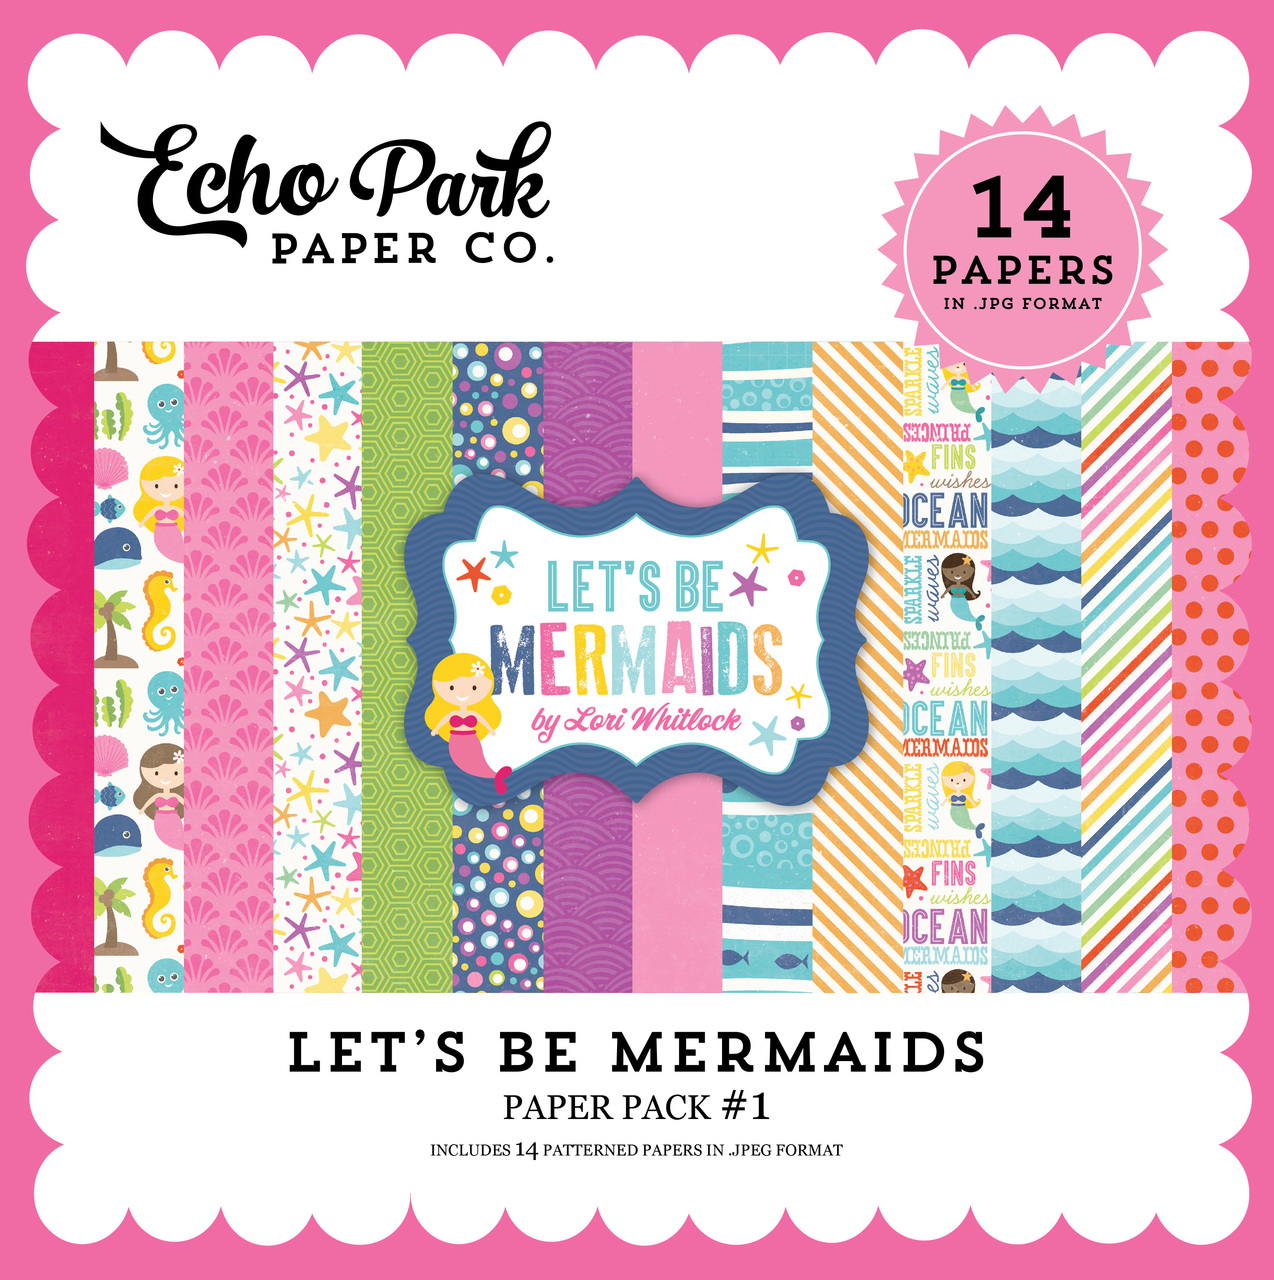 Let's Be Mermaid Paper Pack #1